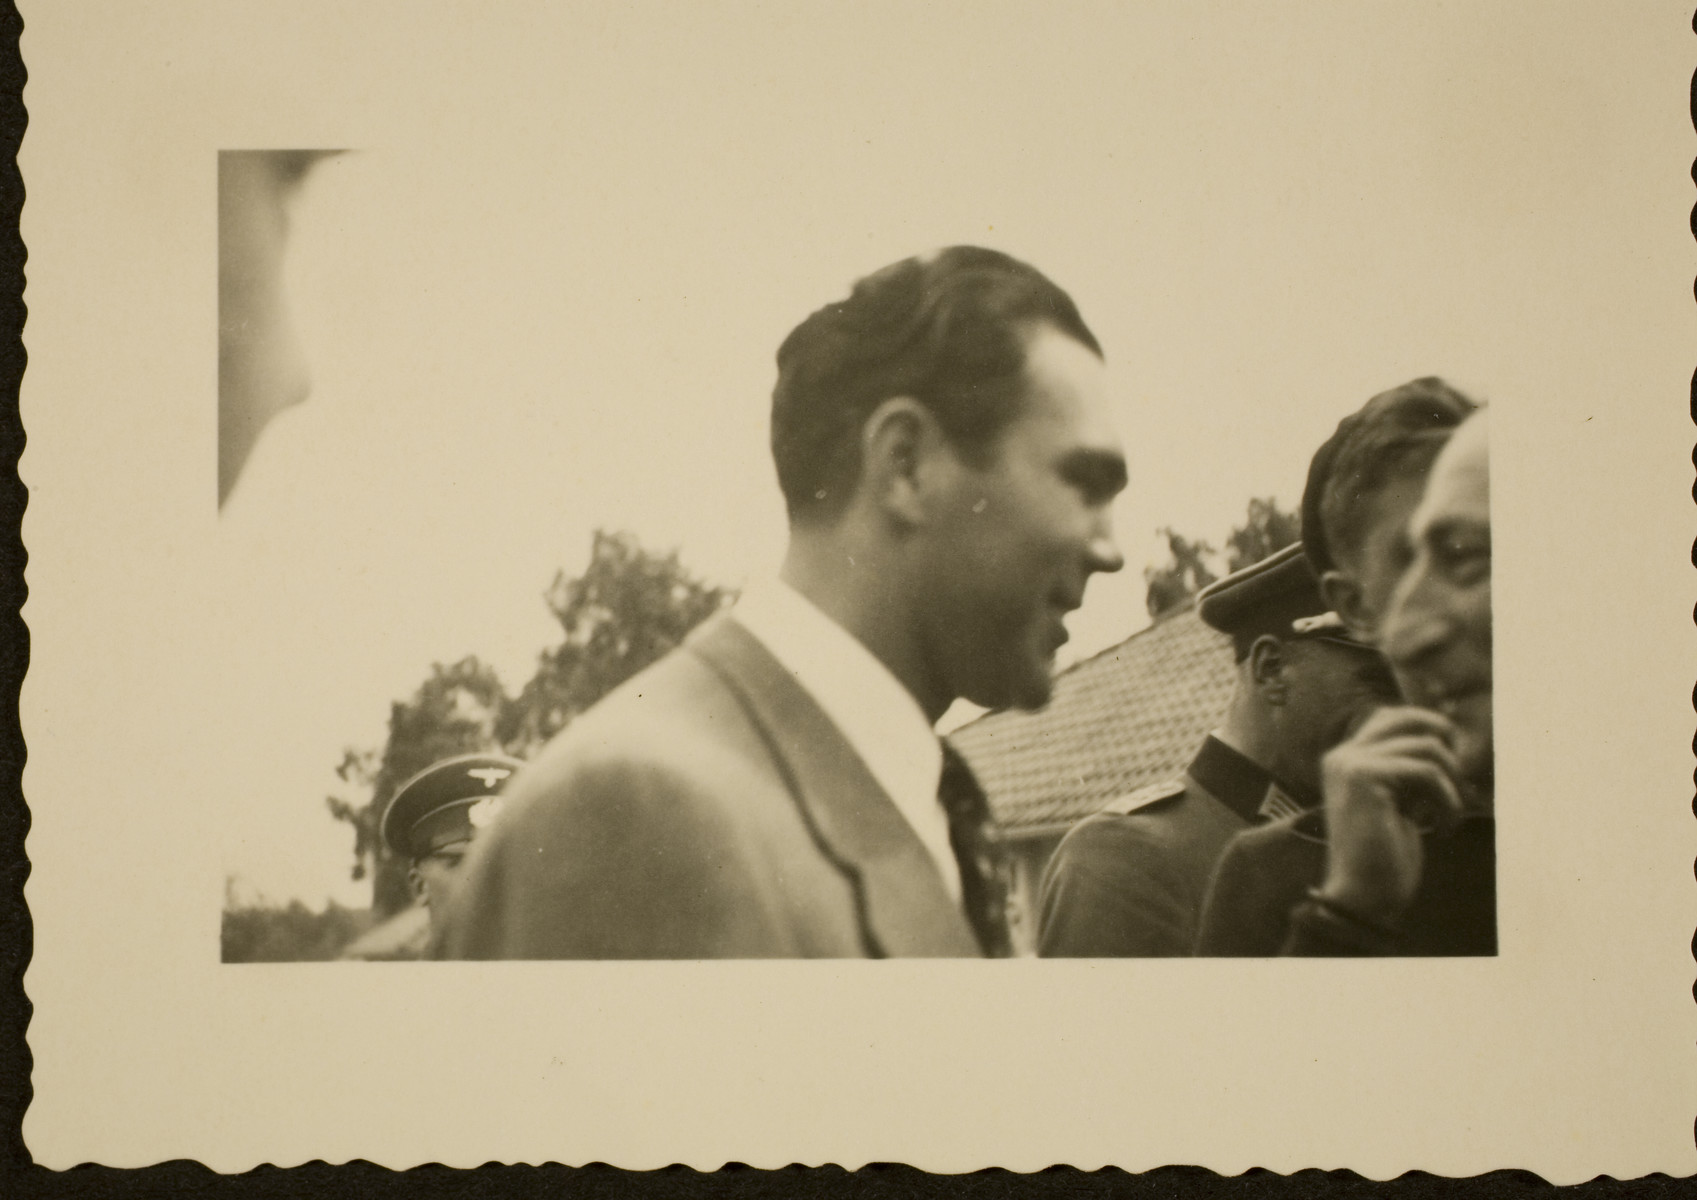 Max Schmeling is surrounded by Nazi officials and other admirers at the Berlin Olympics.